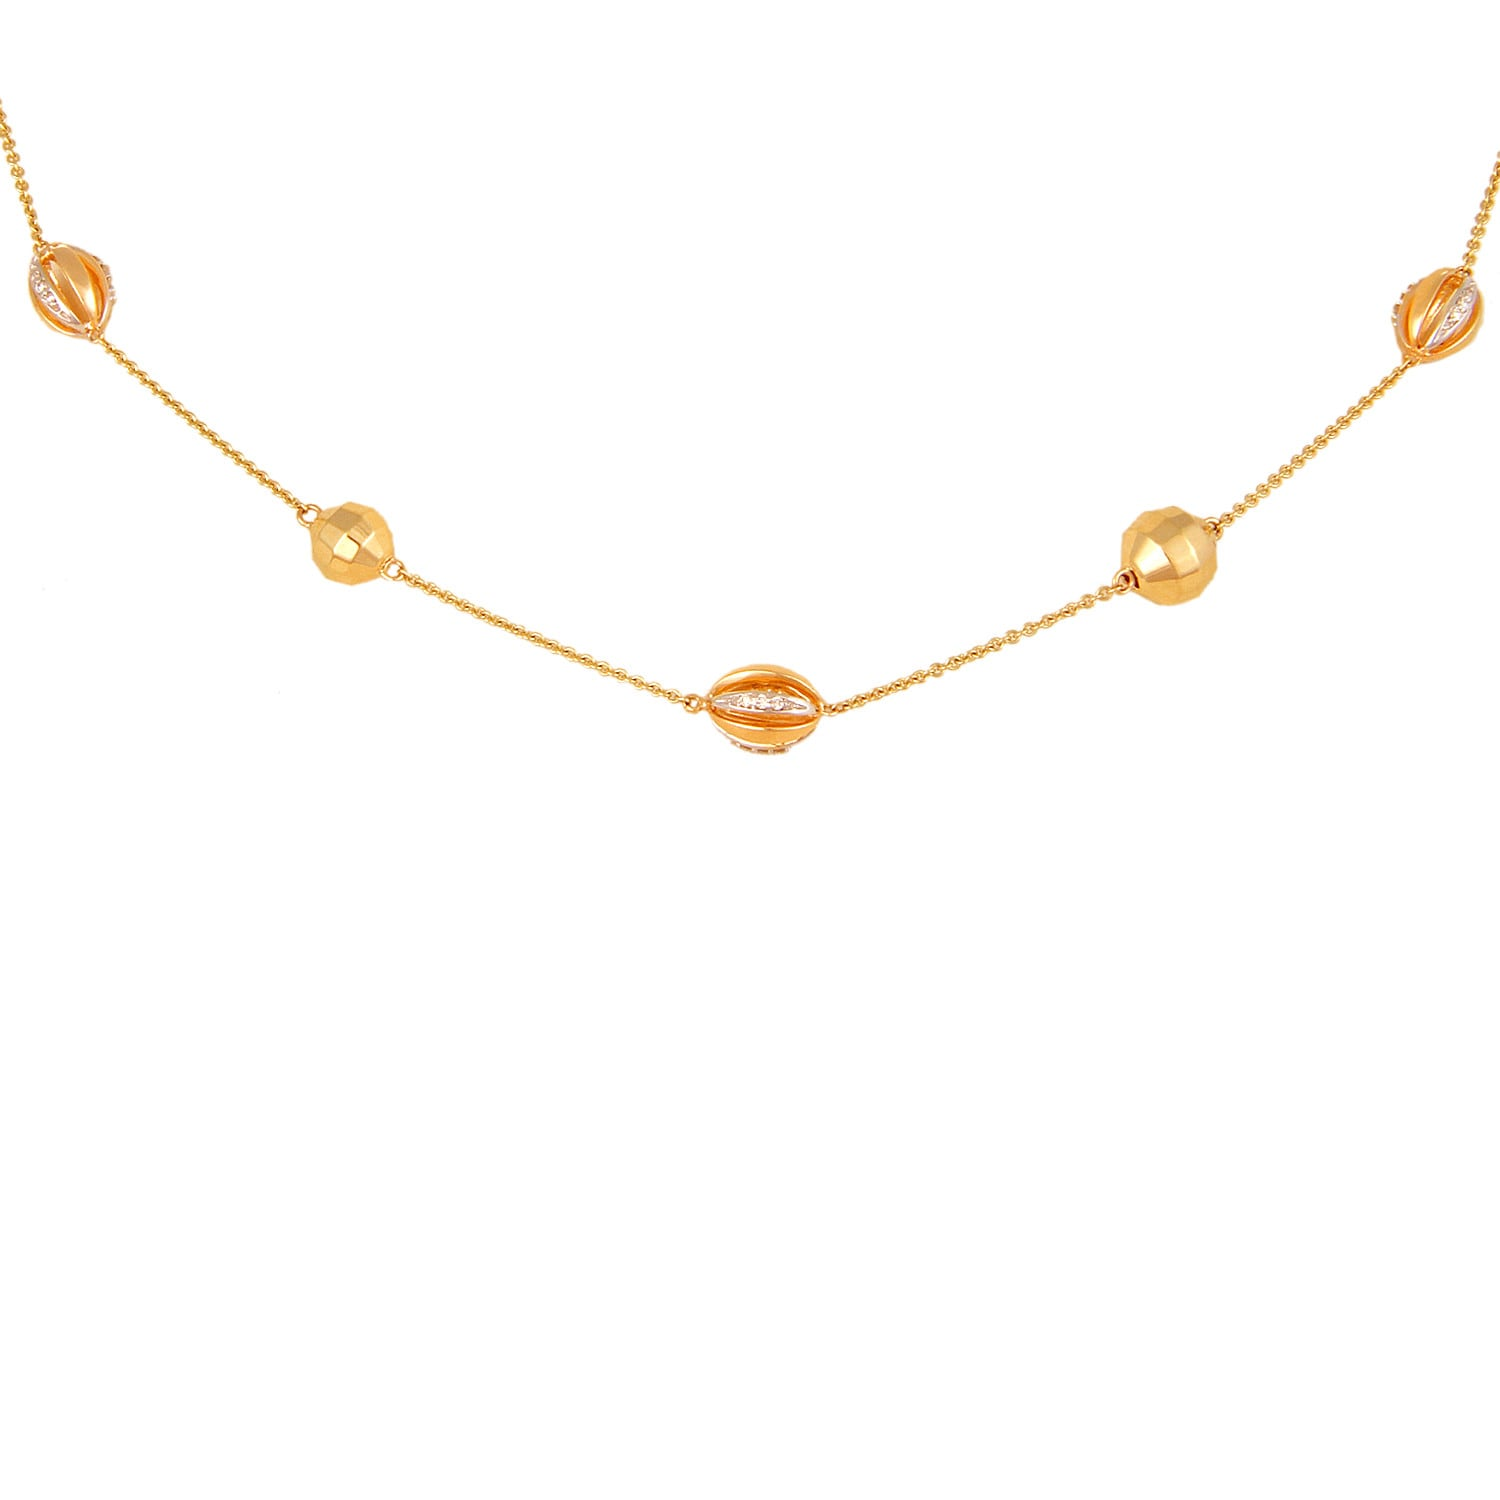 Mia by Tanishq 14KT Yellow Gold Diamond Necklace with Oval Bead Elements